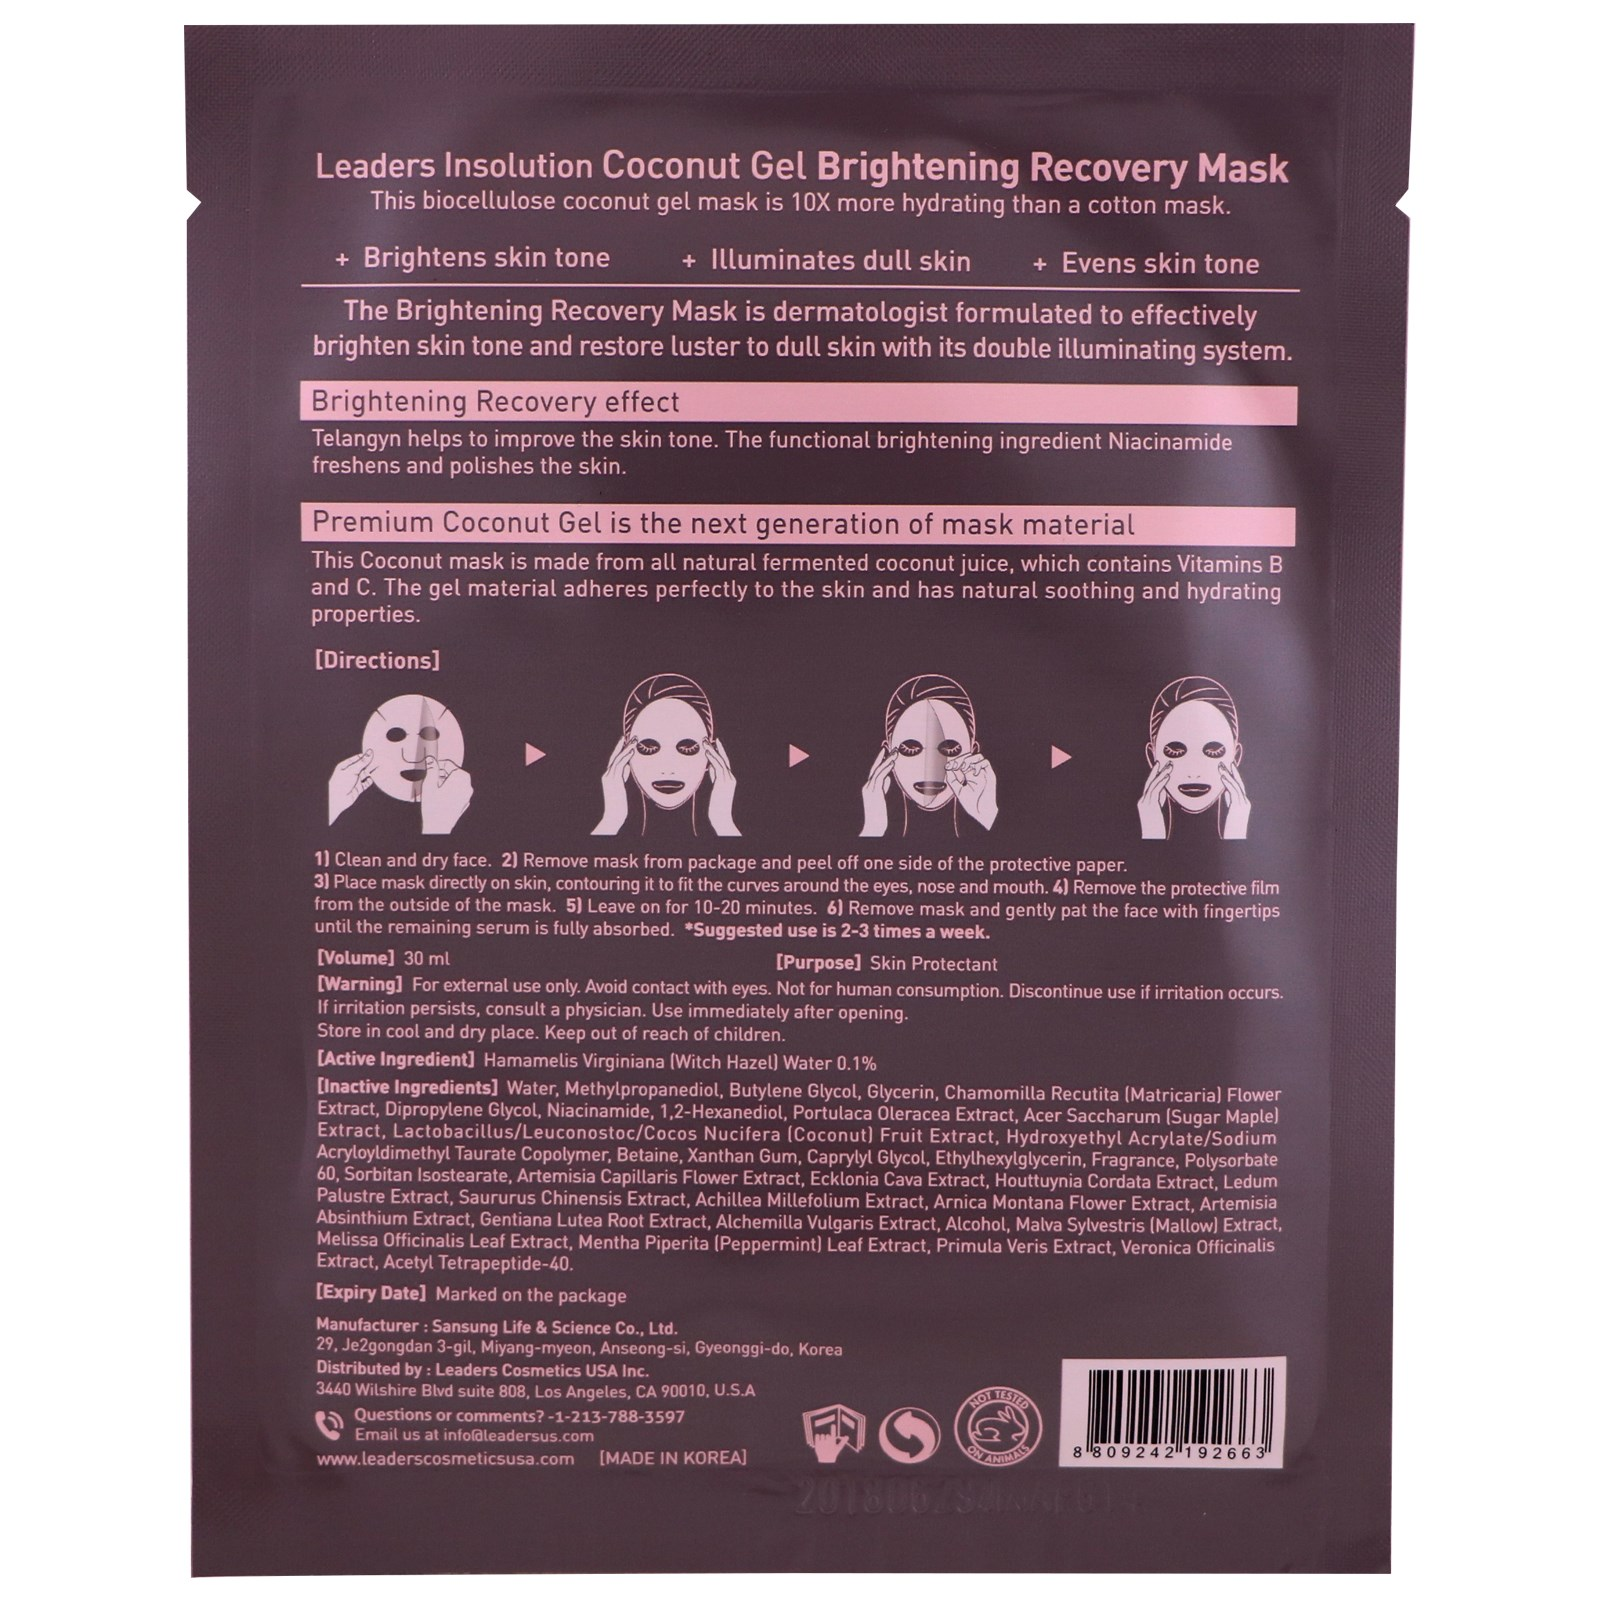 Leaders, Coconut Gel Brightening Recovery Mask, 1 Mask, 30 ml(pack of 12) Chap Ice Lip Balm - Soothes, Protects and Moisturizes - 12 sticks (Cherry)